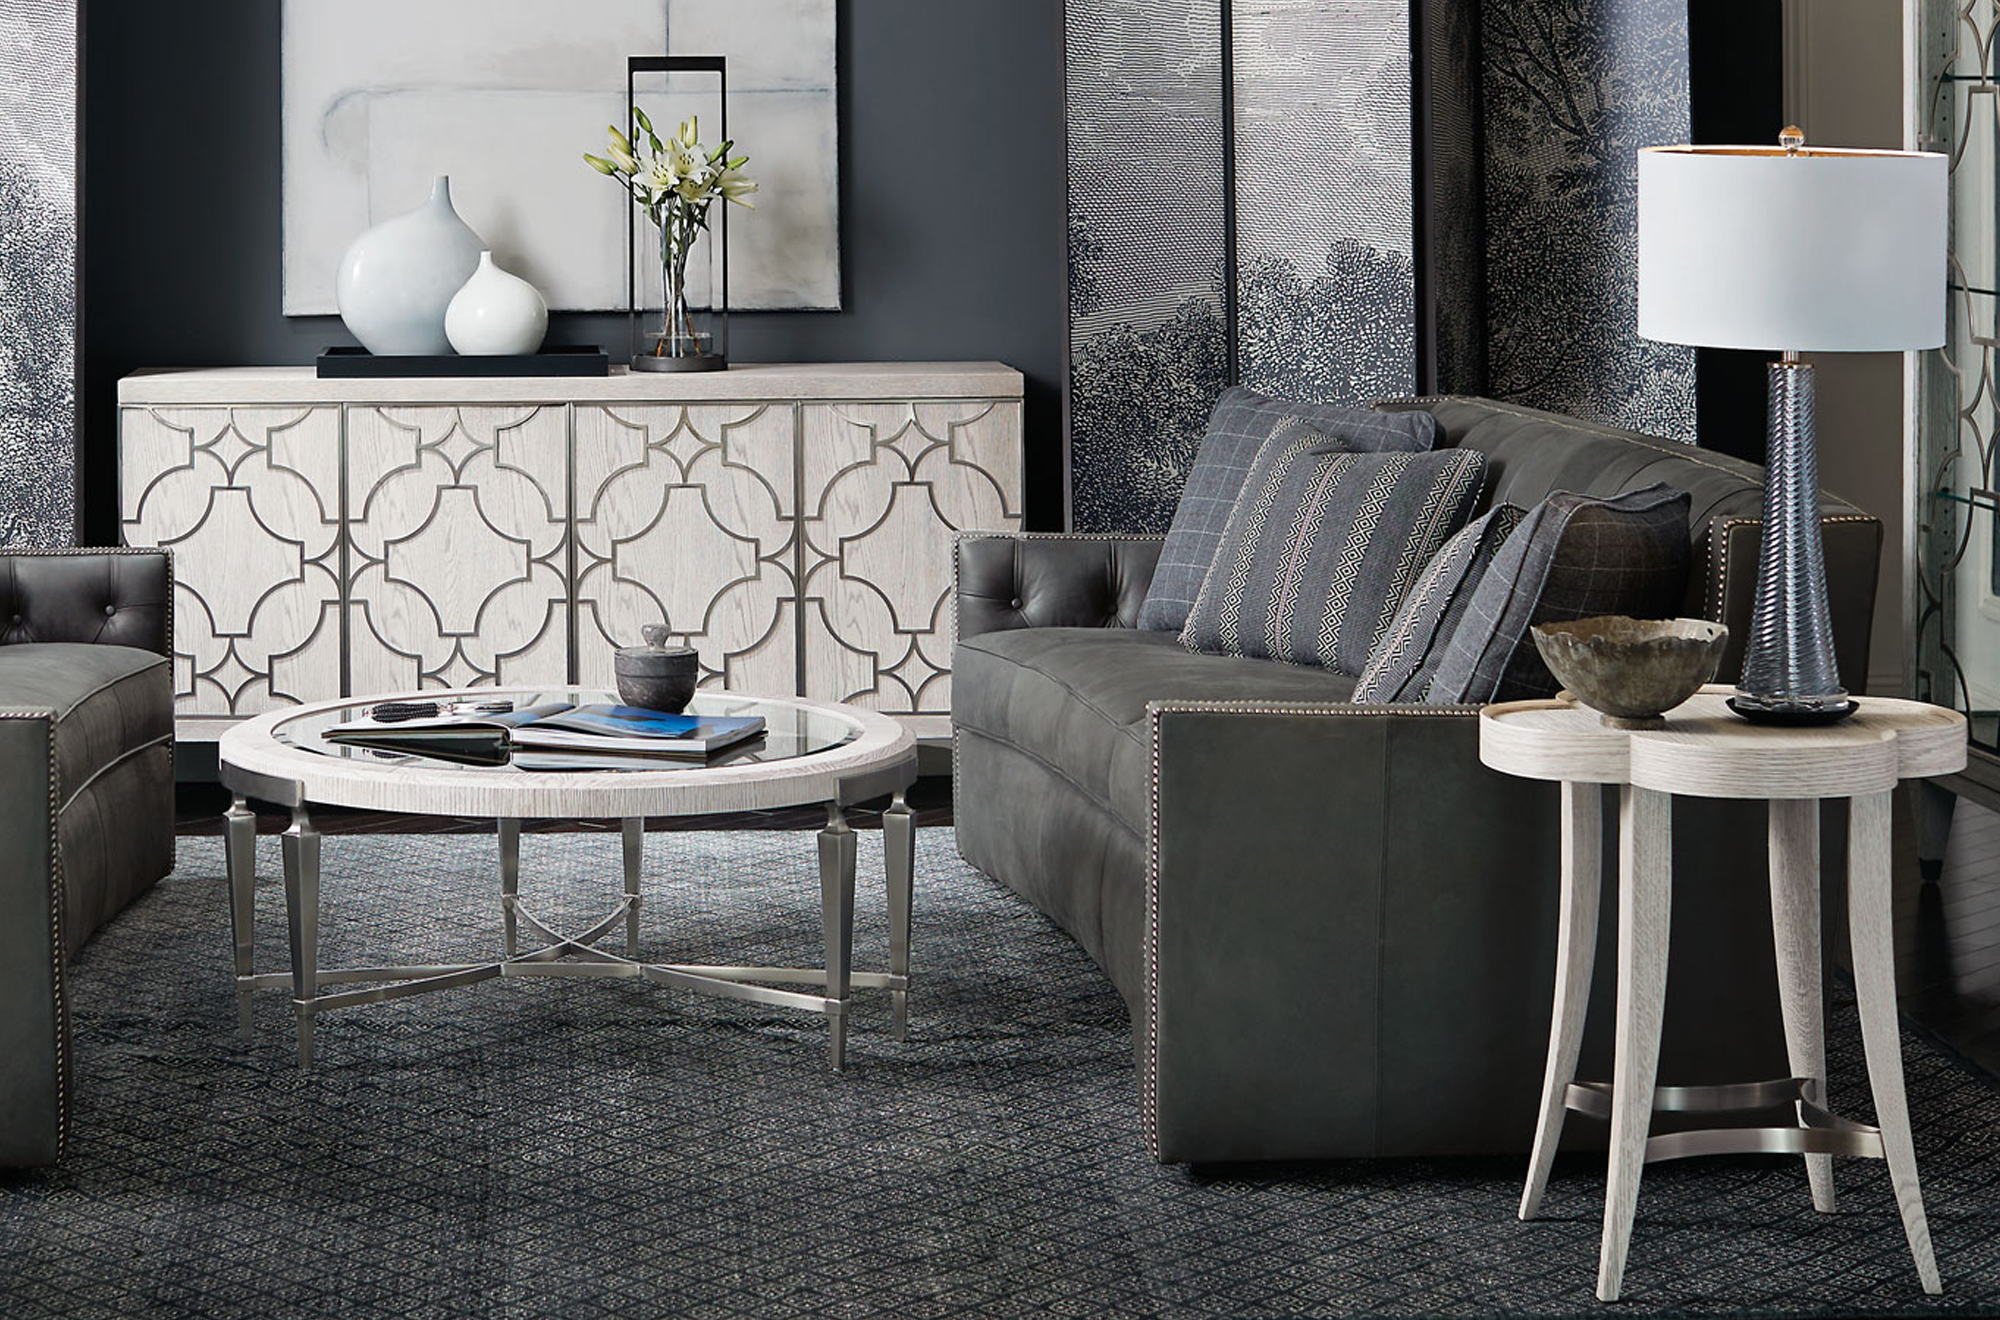 Groovy Shop Our Domaine Blanc Furniture Collections Delaware Interior Design Ideas Ghosoteloinfo